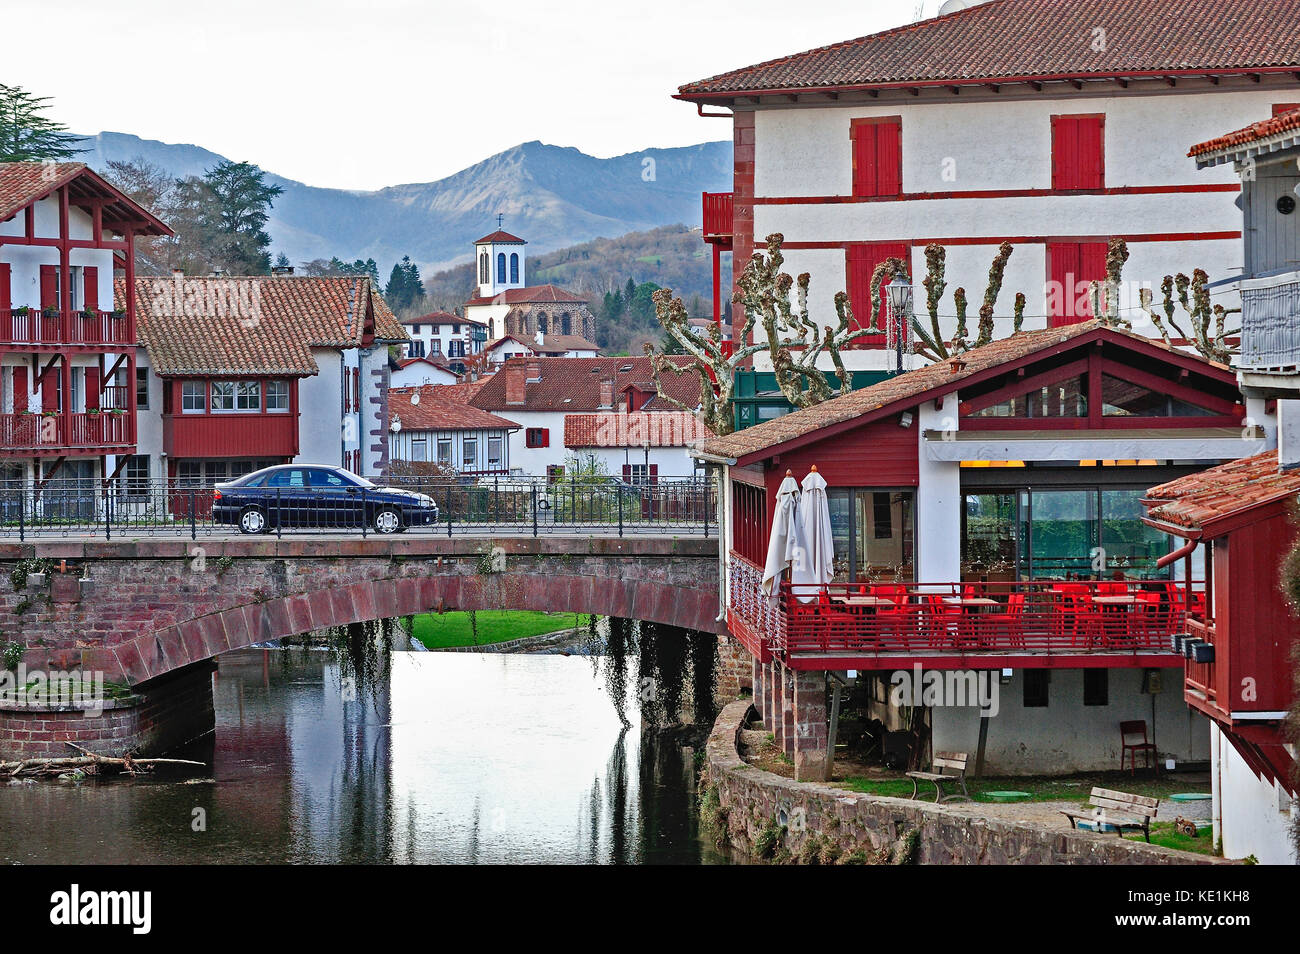 Saint jean pied de port stock photos saint jean pied de port stock images alamy - Hotel saint jean pied de port des pyrenees ...